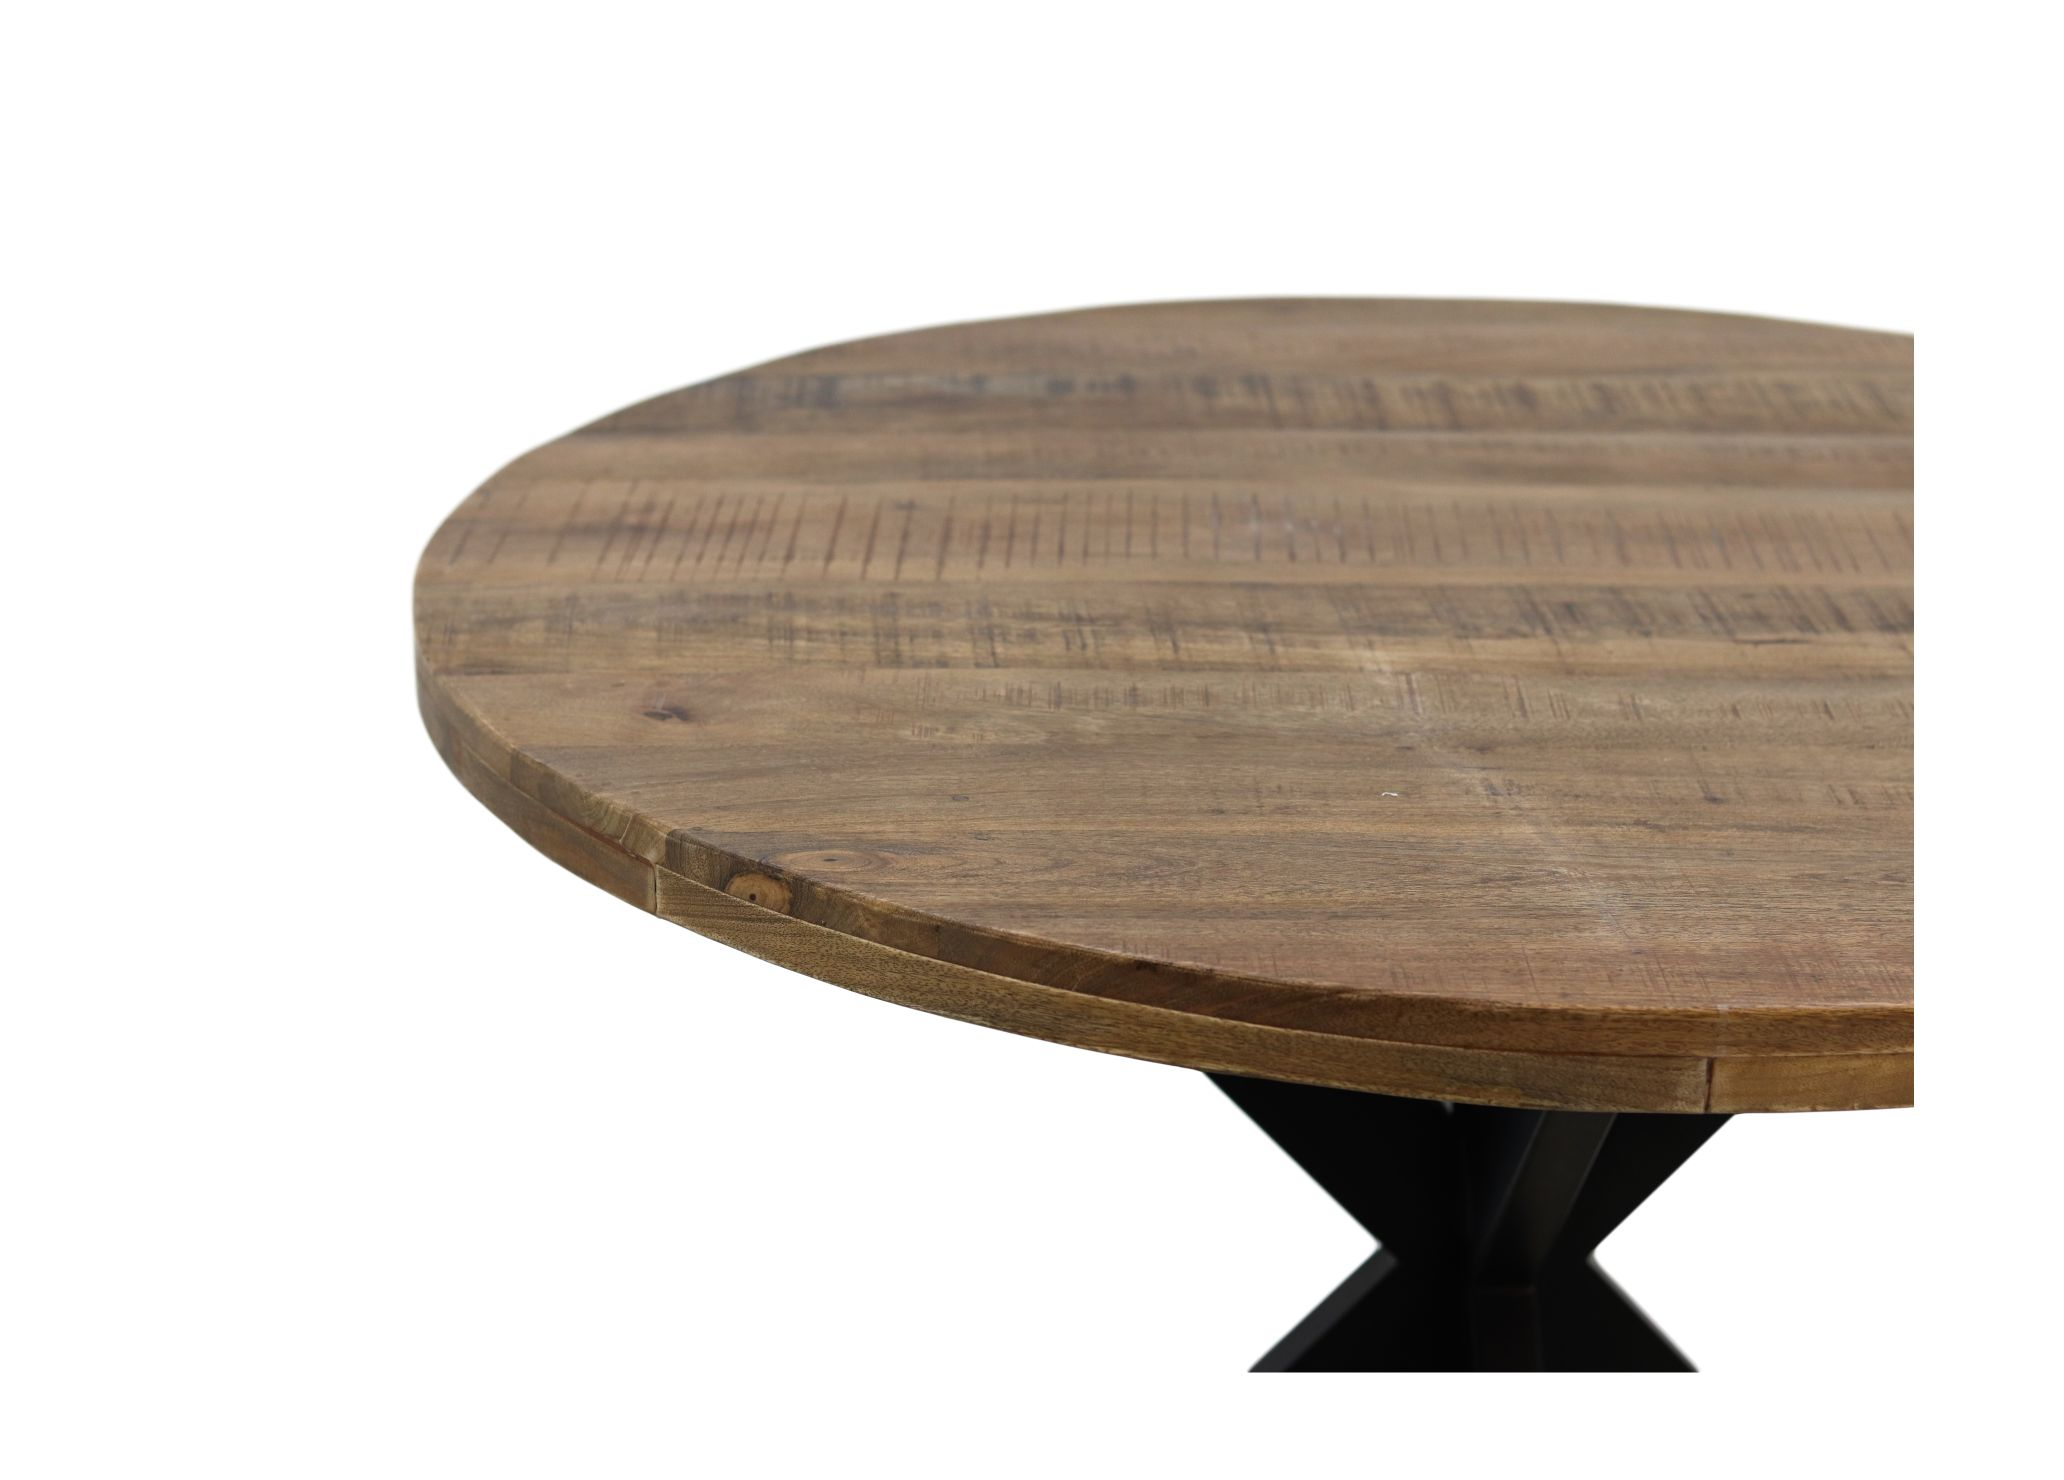 Round Dining Table O150 Cm Rustic Mango Wood Iron Tables Table Tops Henk Schram Meubelen